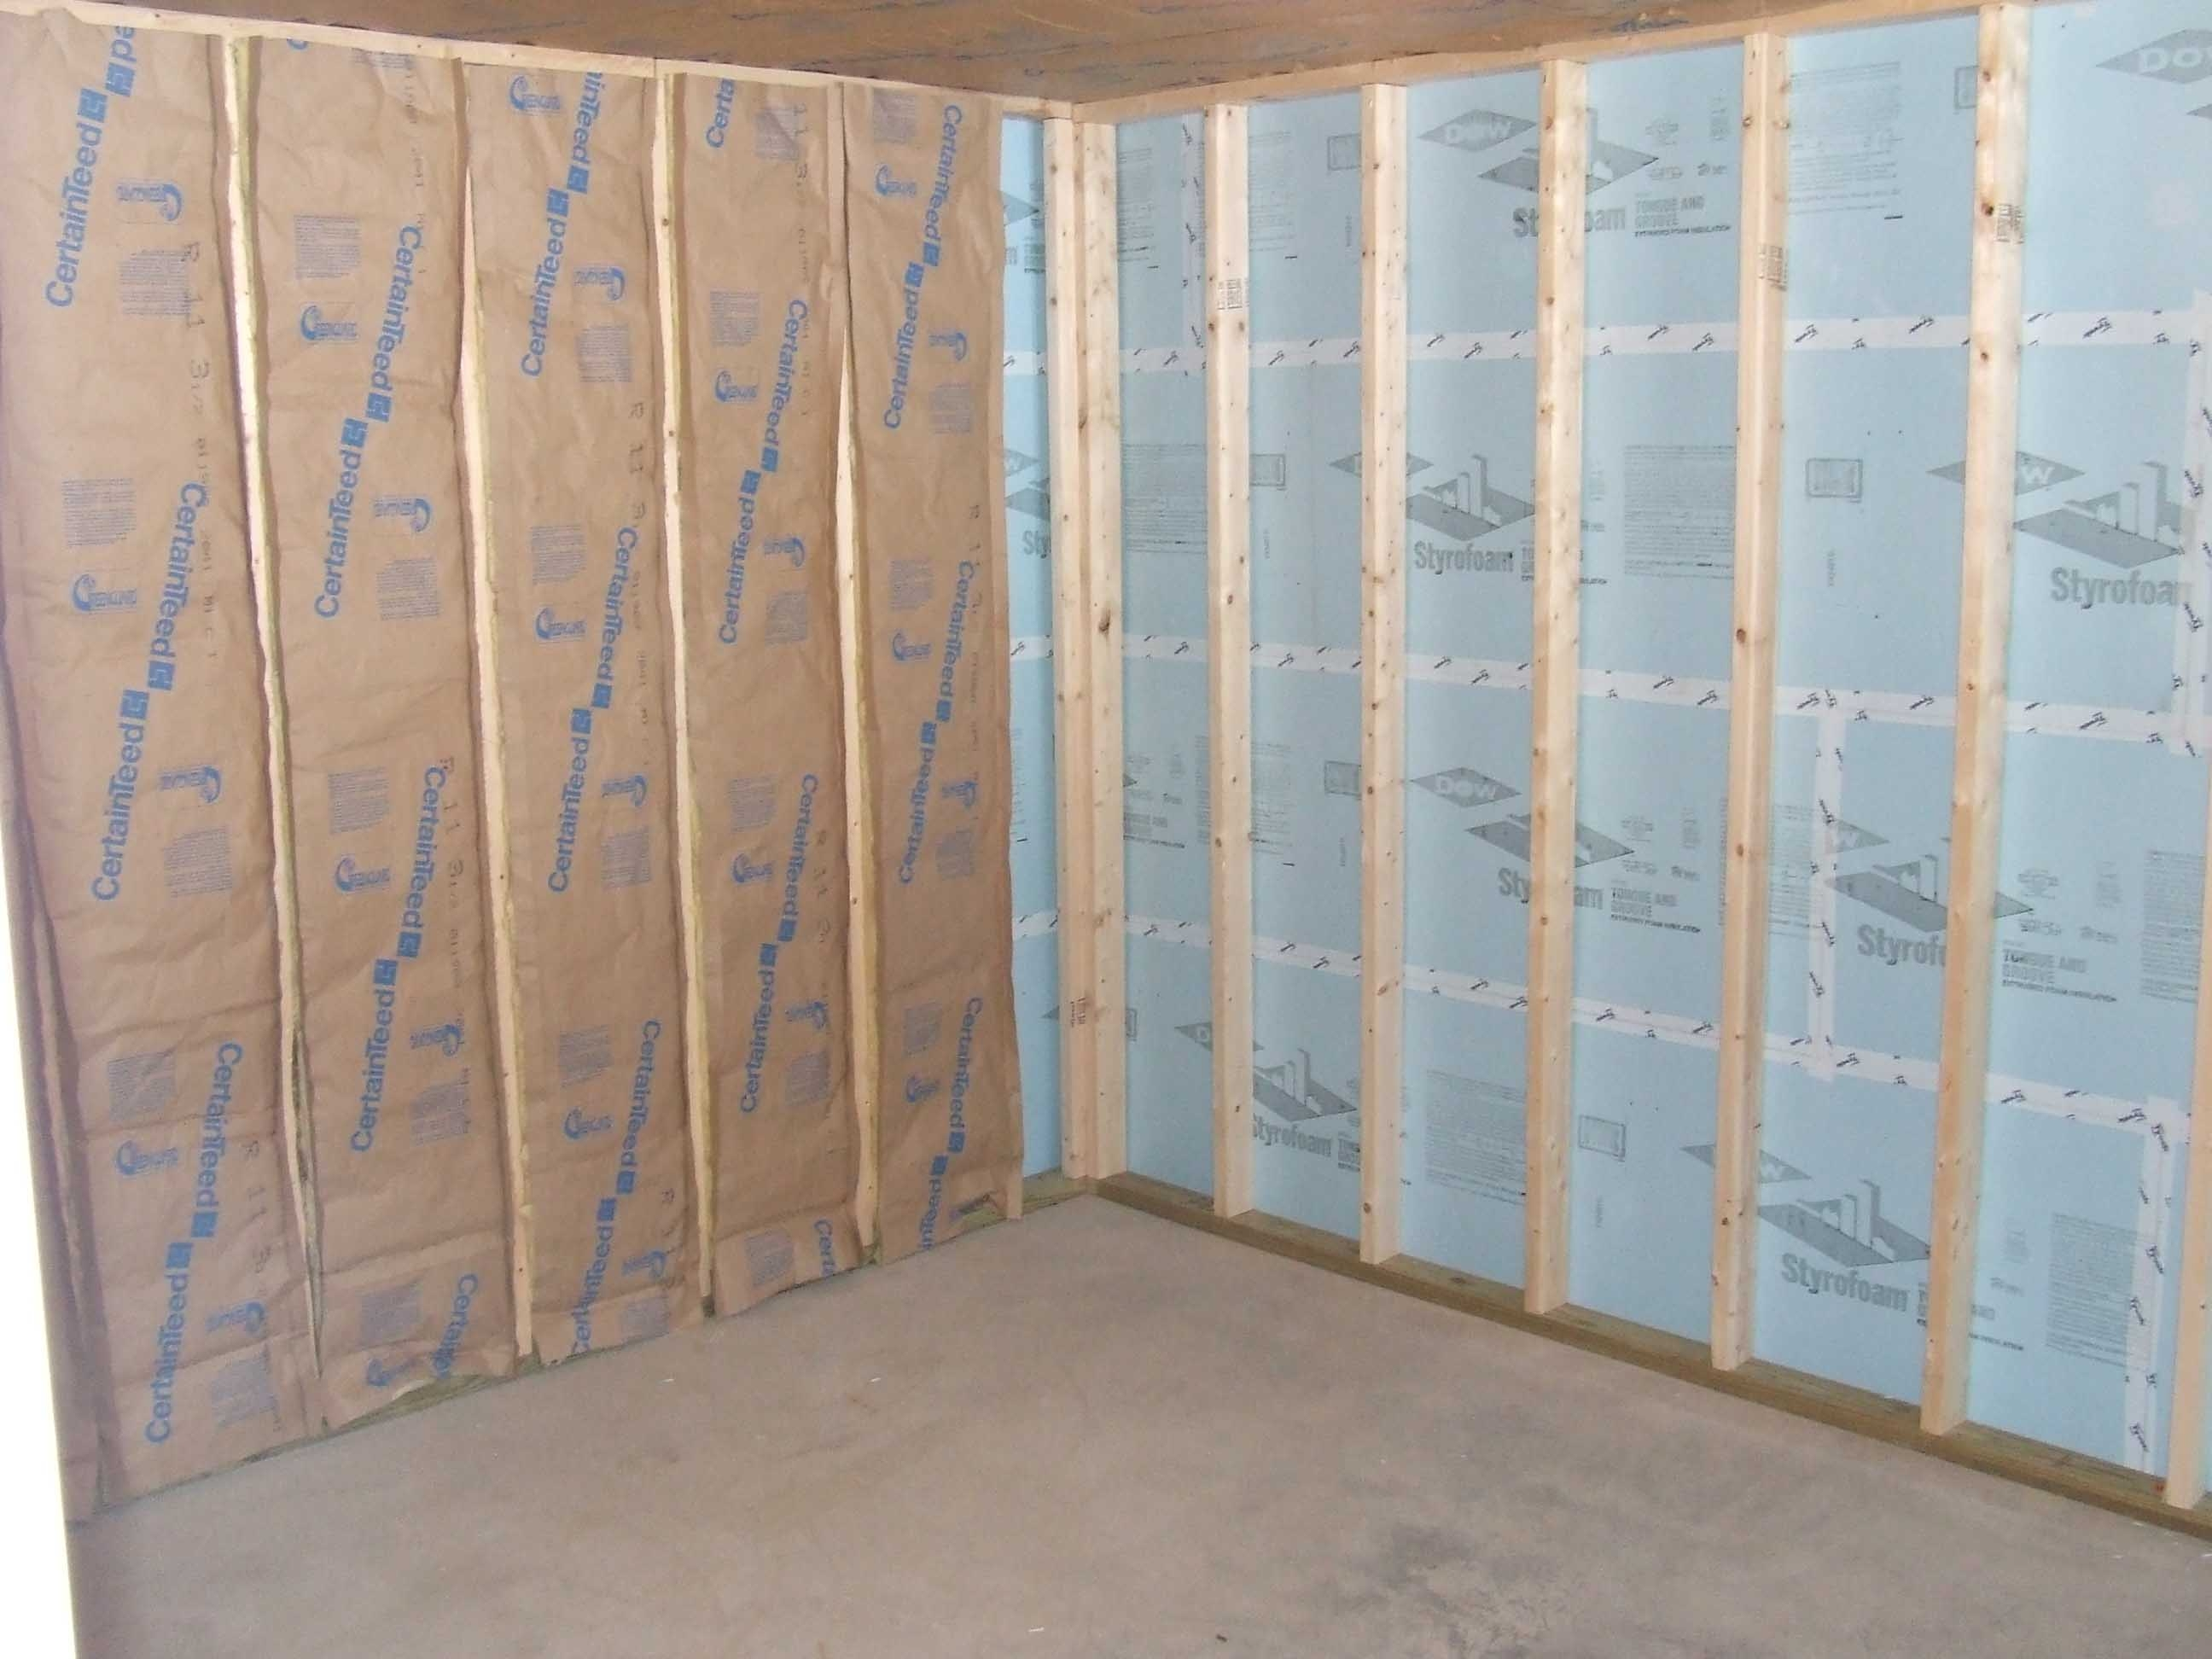 Types Of Insulation For Basement Wallsbest methods for insulating basement walls